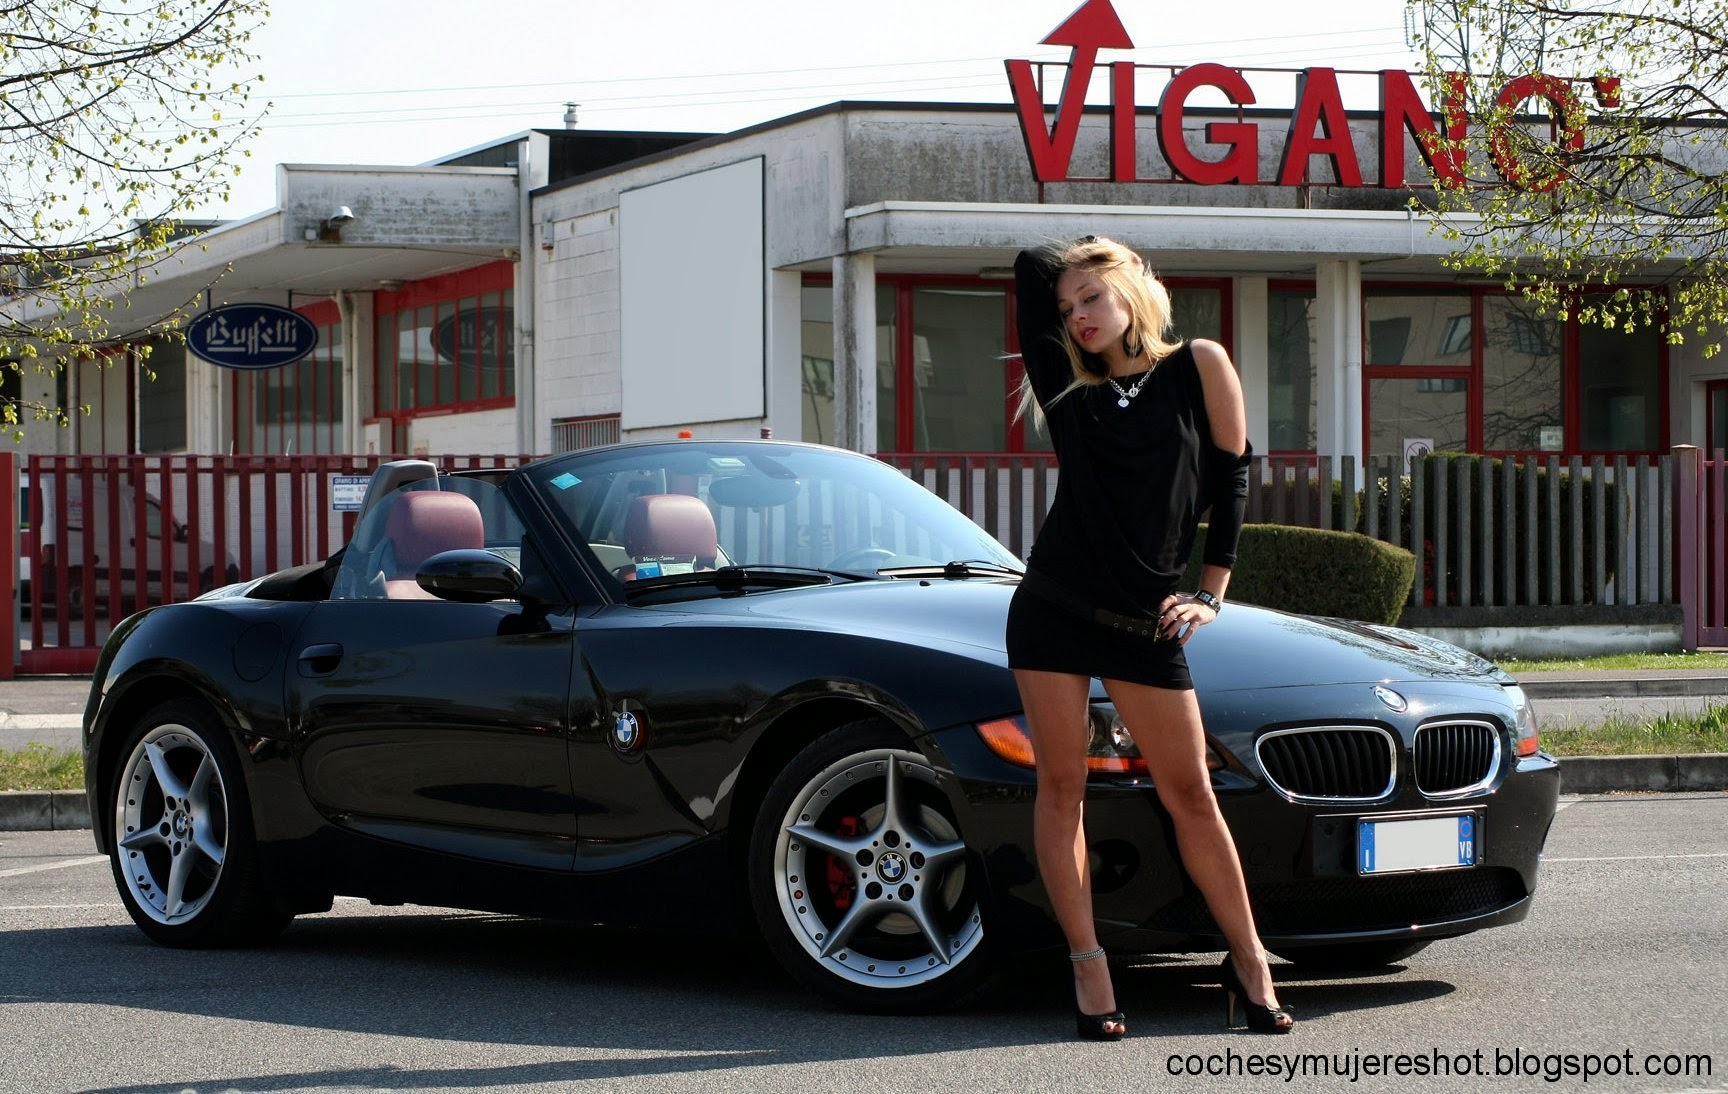 coches y mujeres resoluci n hd bmw z4 and girls. Black Bedroom Furniture Sets. Home Design Ideas